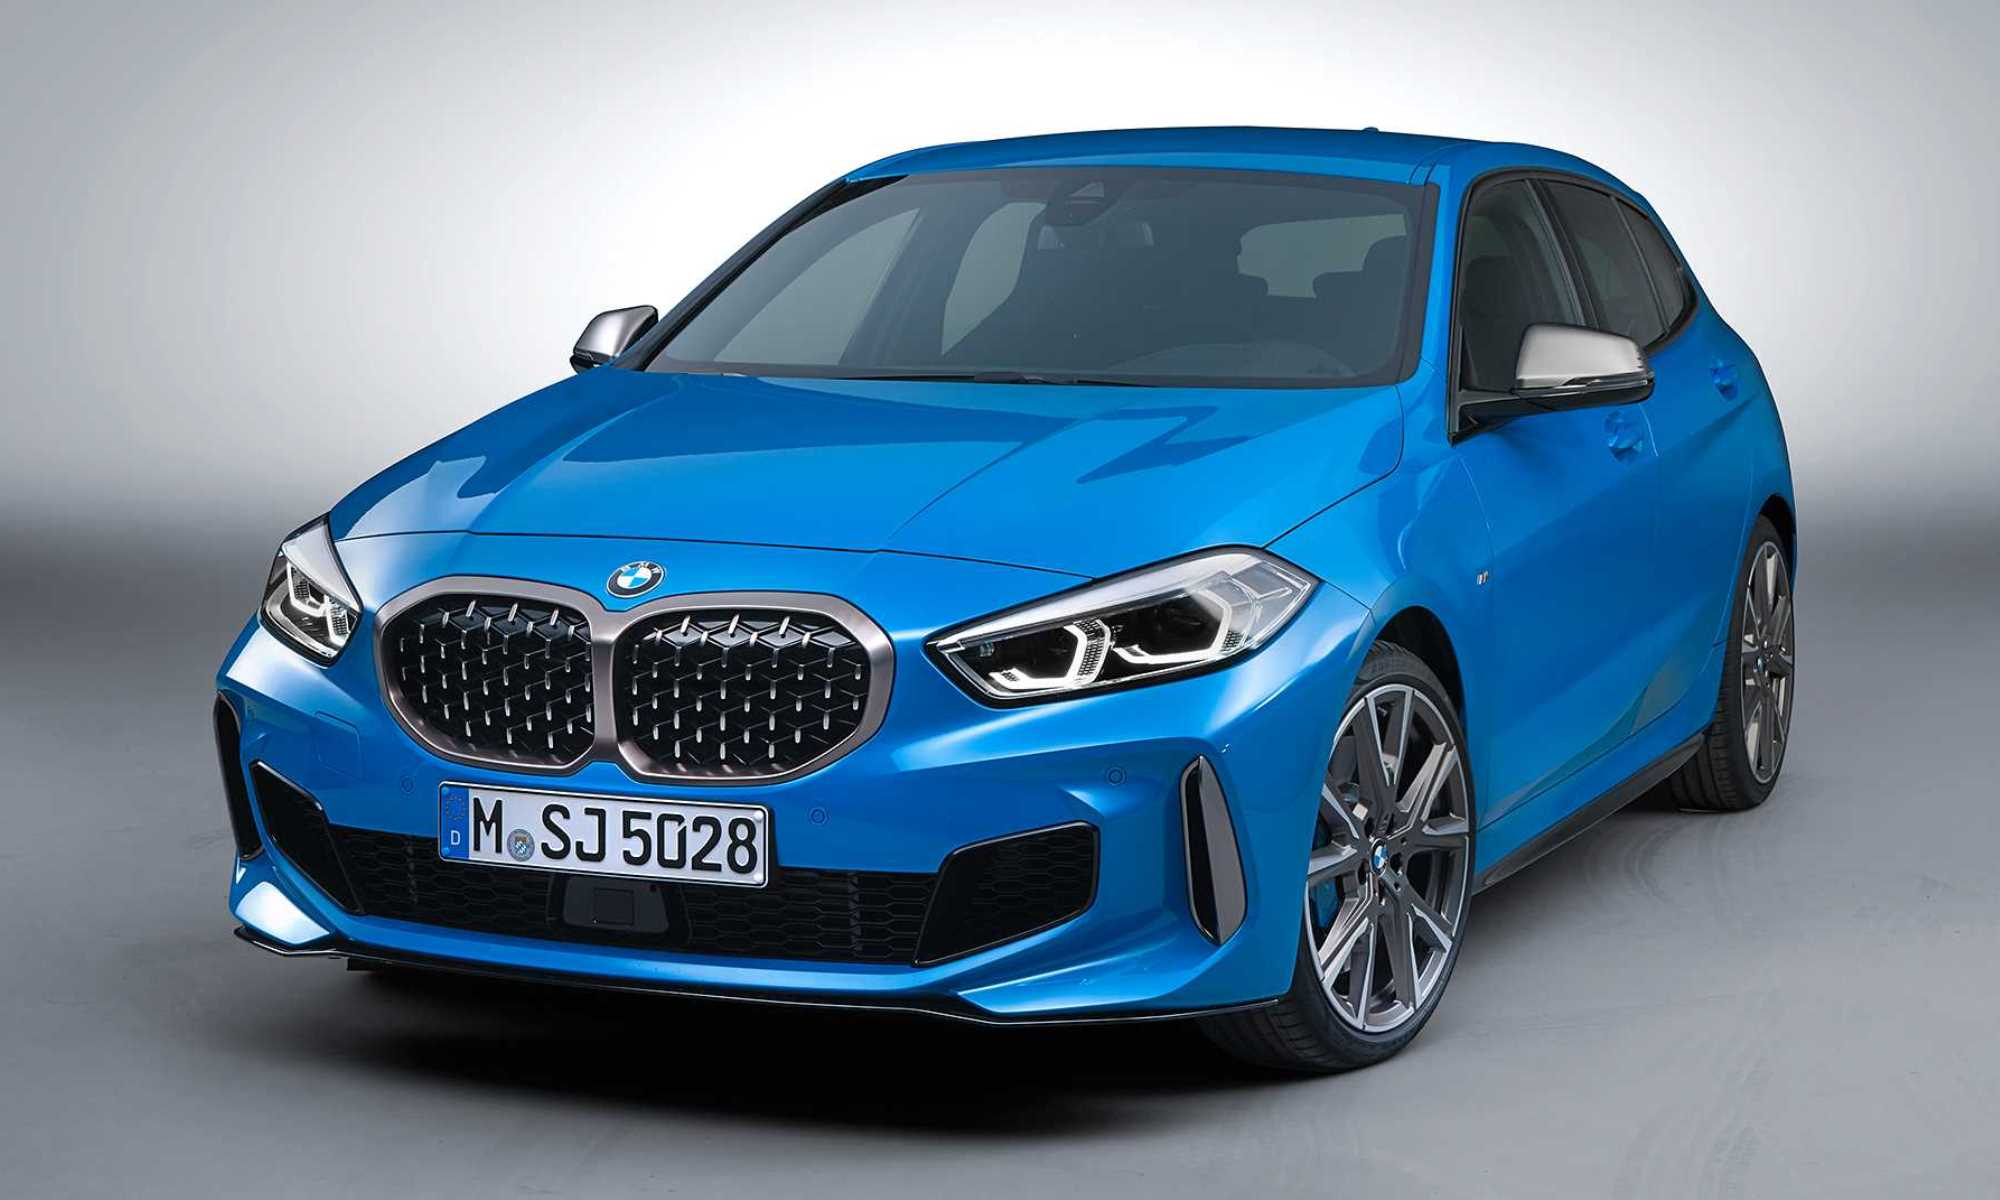 BMW M135i hatchback